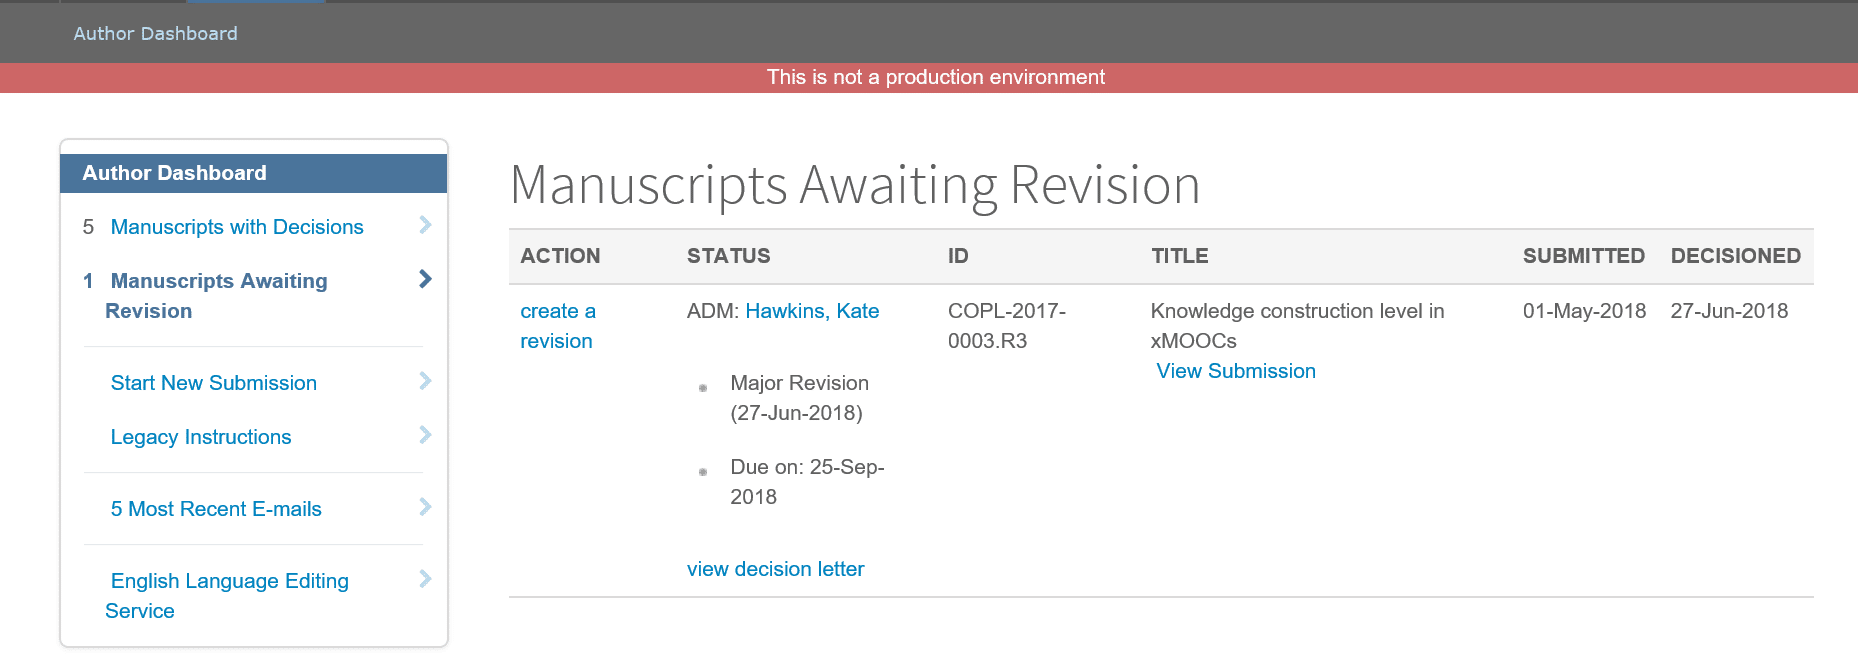 search for a document using key words